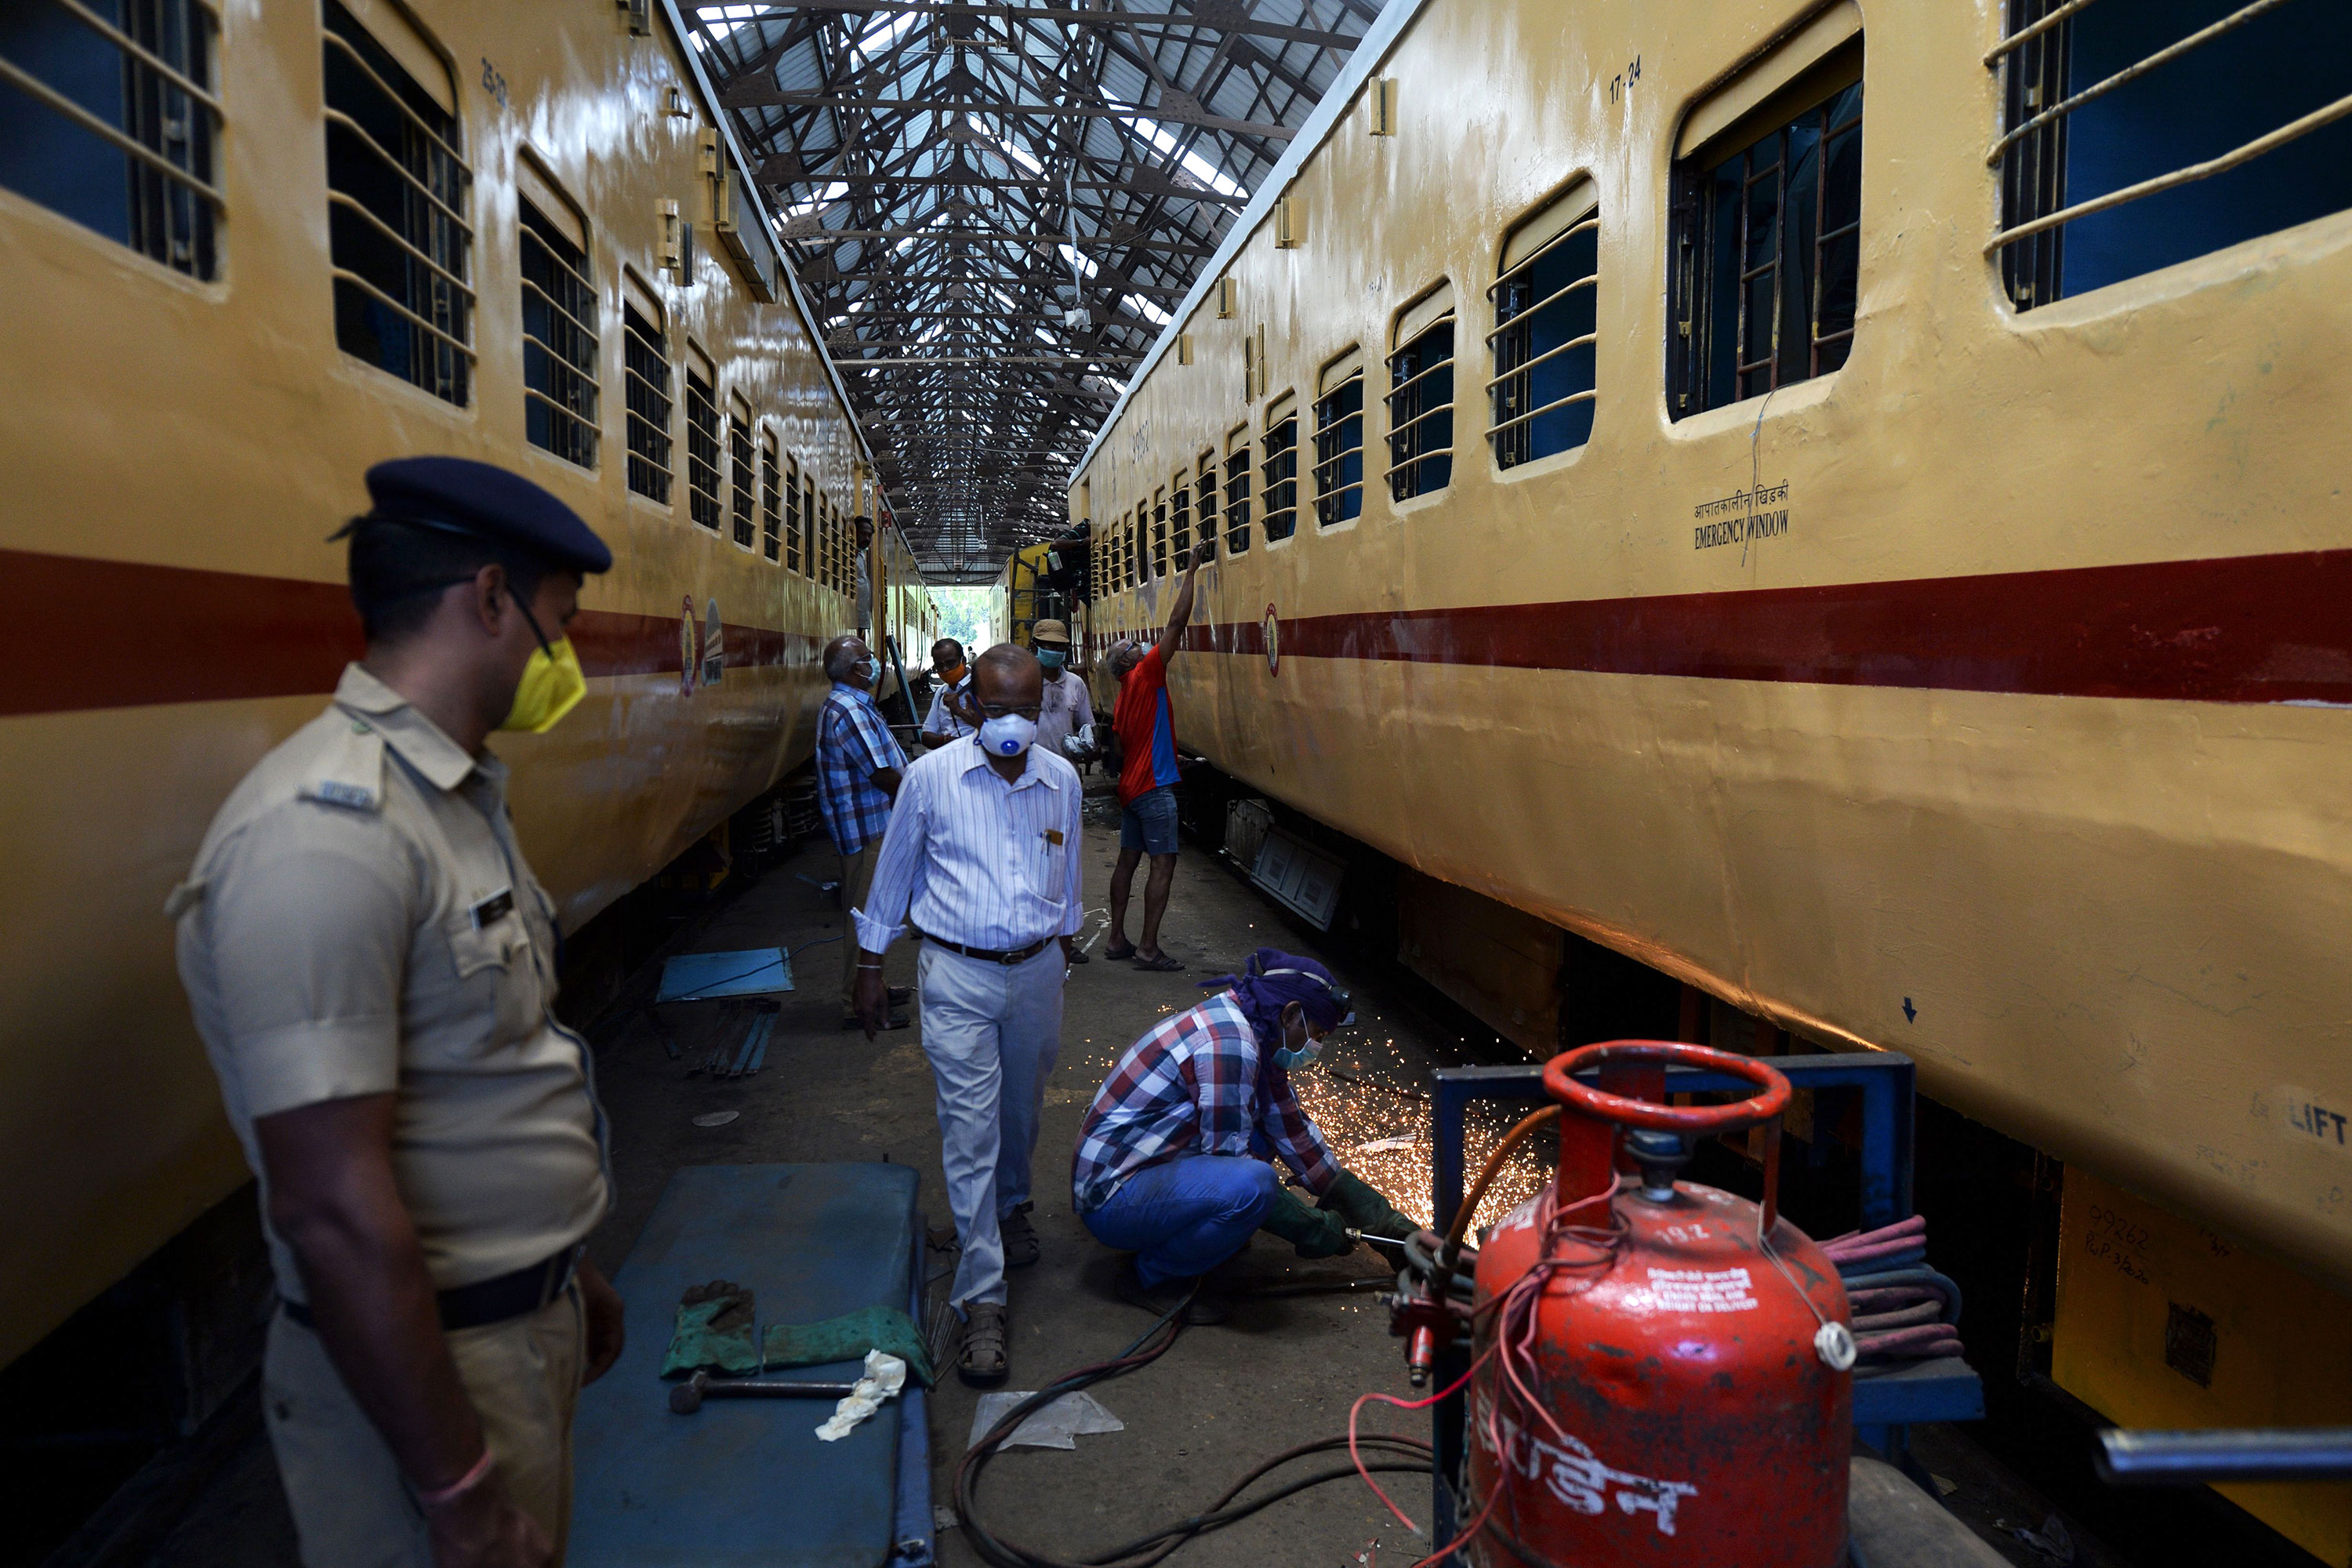 Workers prepare train coaches to be used as temporary isolation wards for coronavirus patients in Chennai, India on March 30.